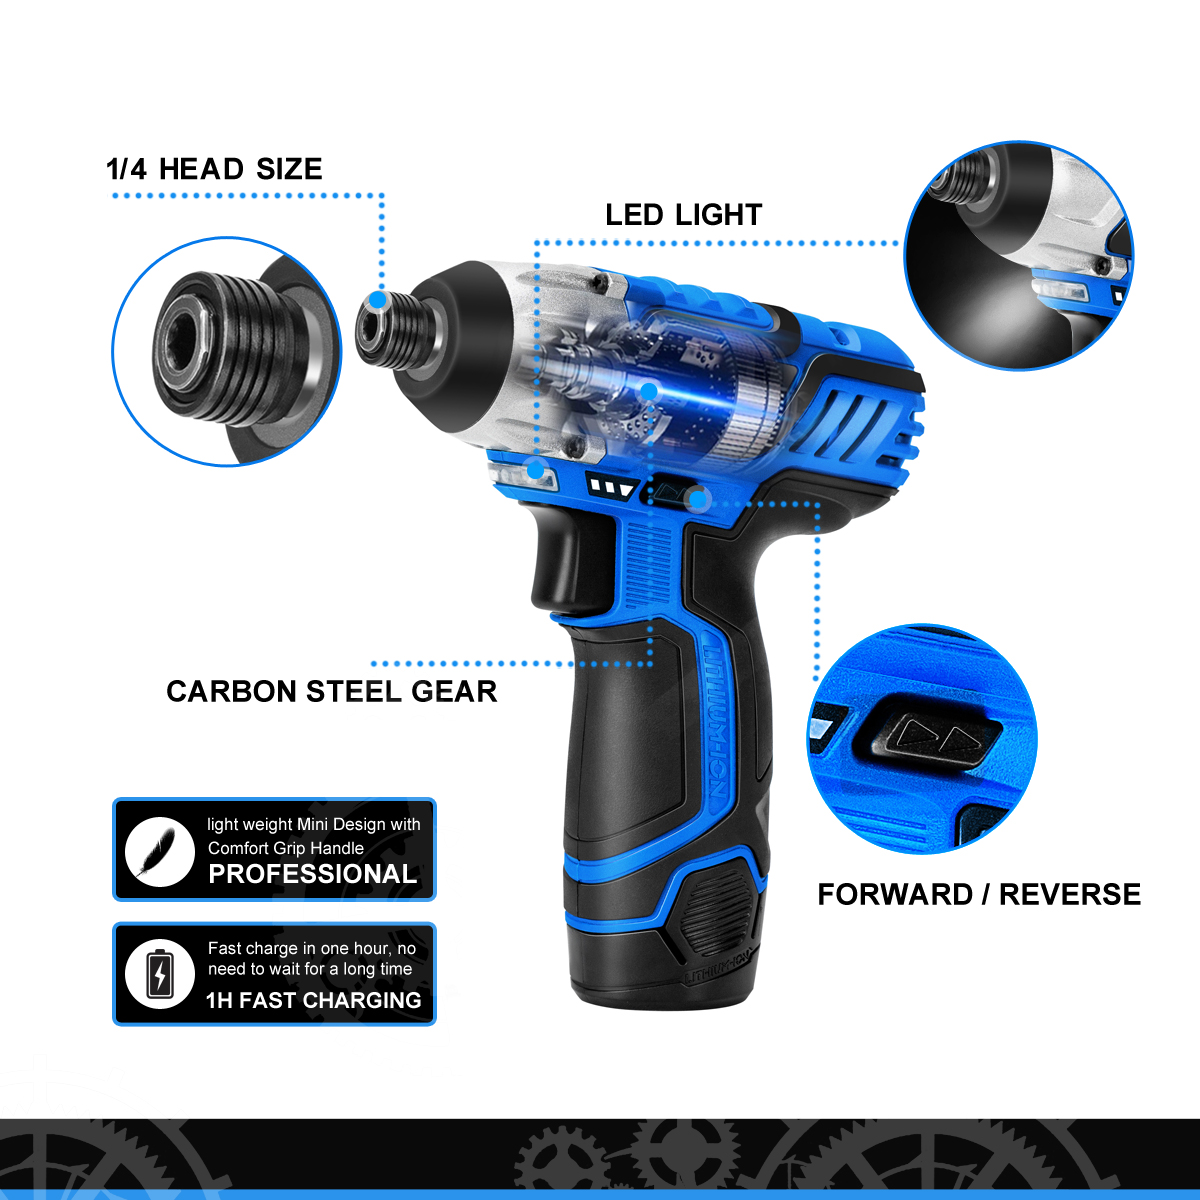 Image 4 - PROSTORMER 12V Series Cordless Power Tools Household DIY Electric Drill Screwdriver Wrench Ratchet Wrench Professional Tools-in Electric Drills from Tools on